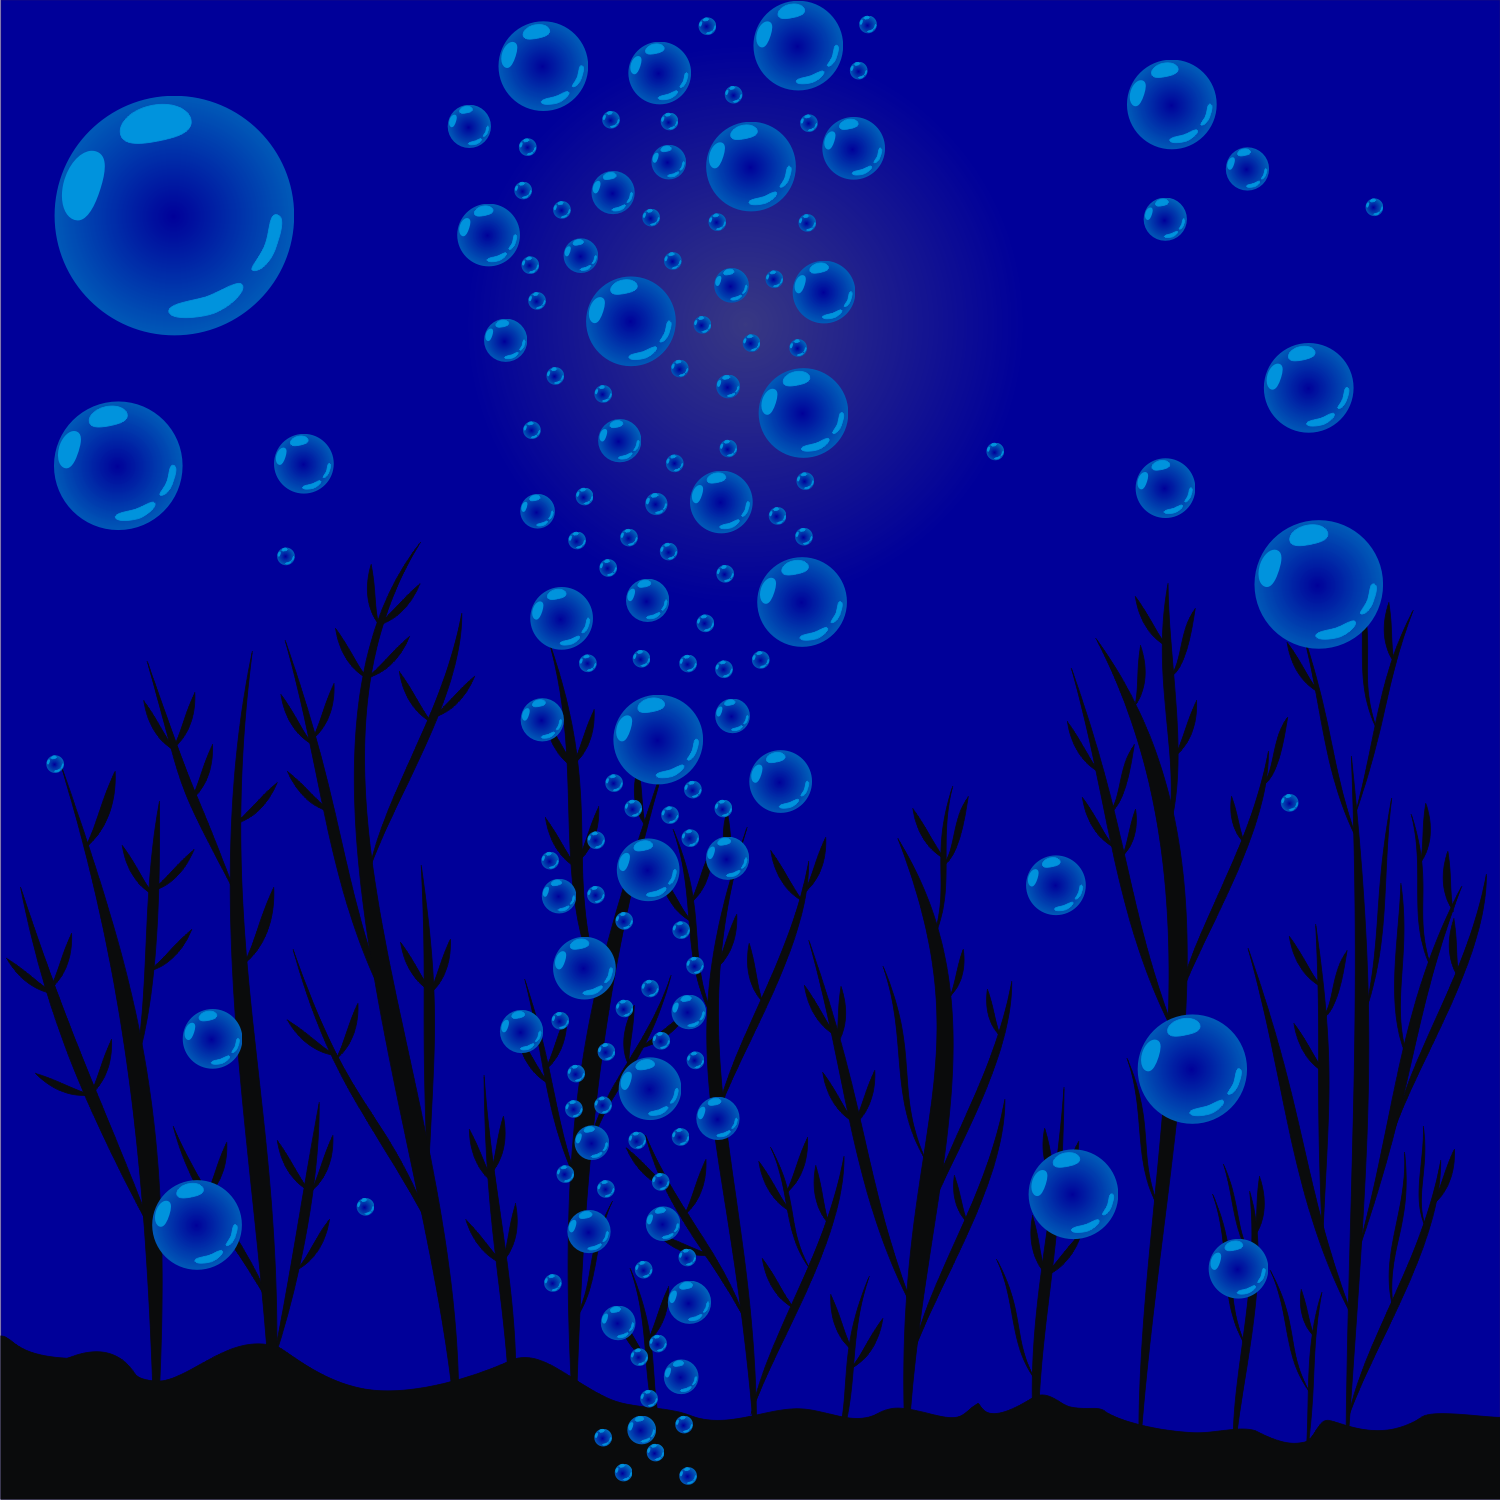 Underwater plants and bubbles. Free vector image